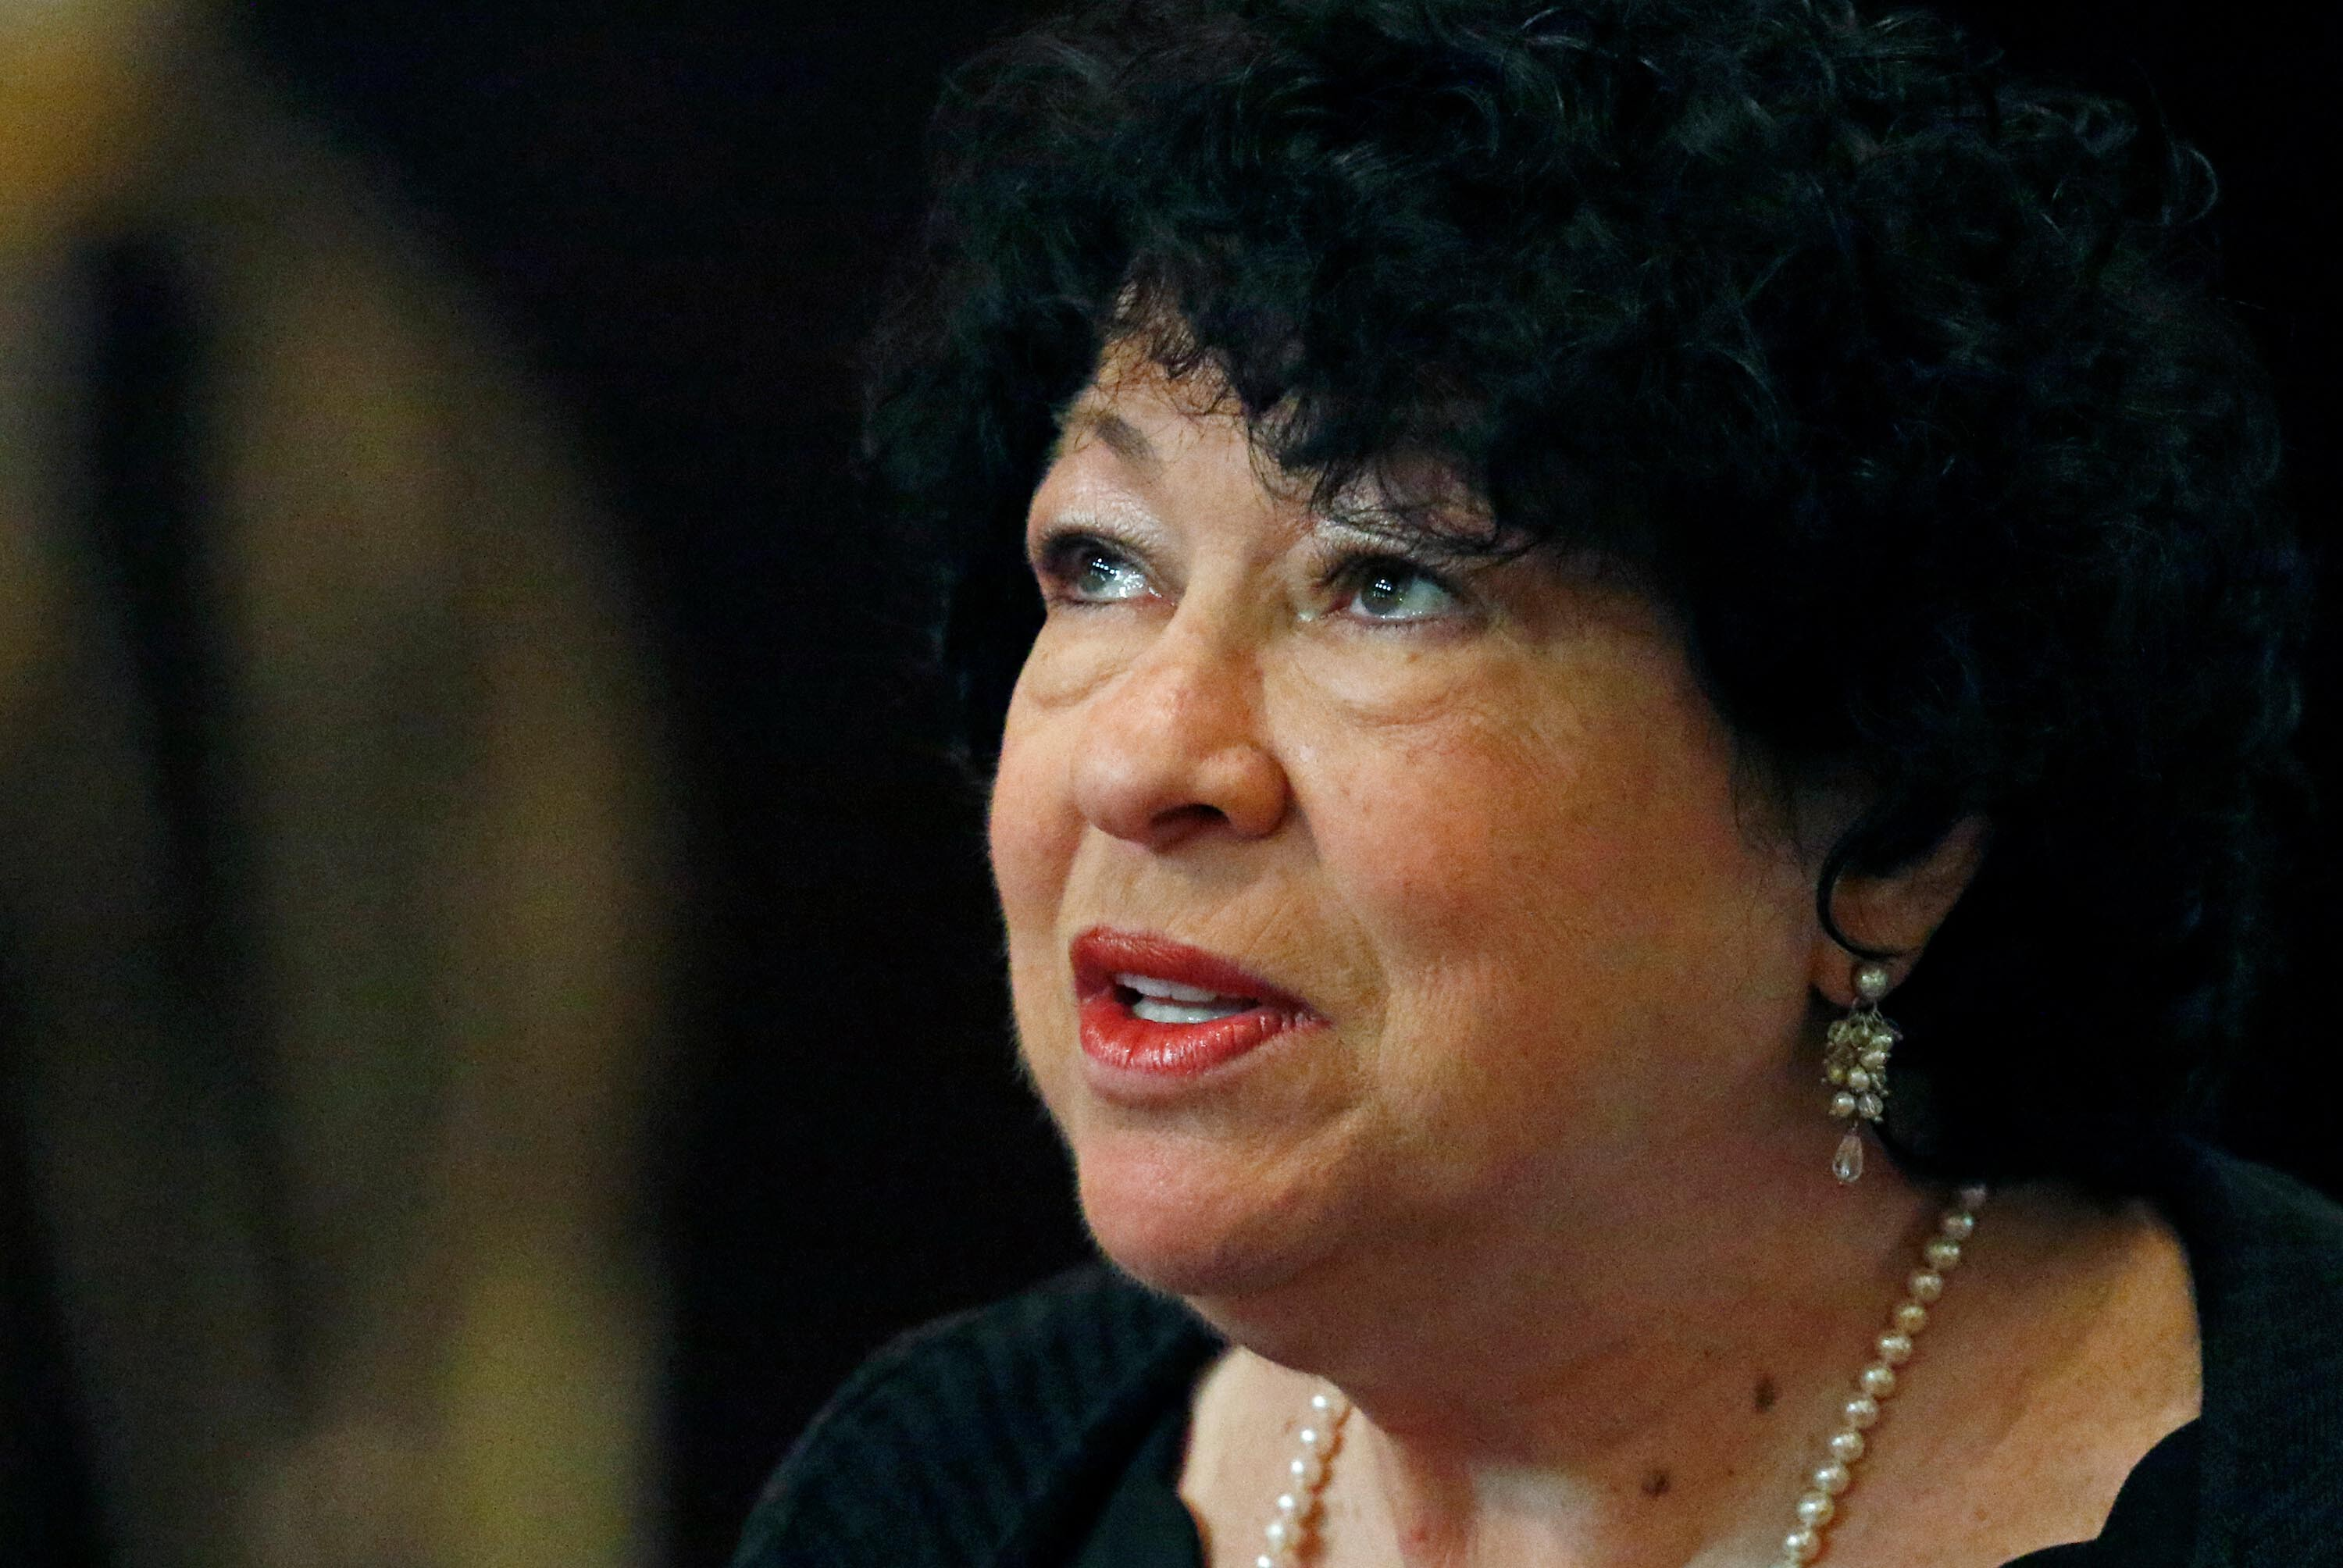 Justice Sonia Sotomayor criticizes colleagues for allowing Texas abortion ban to remain in effect